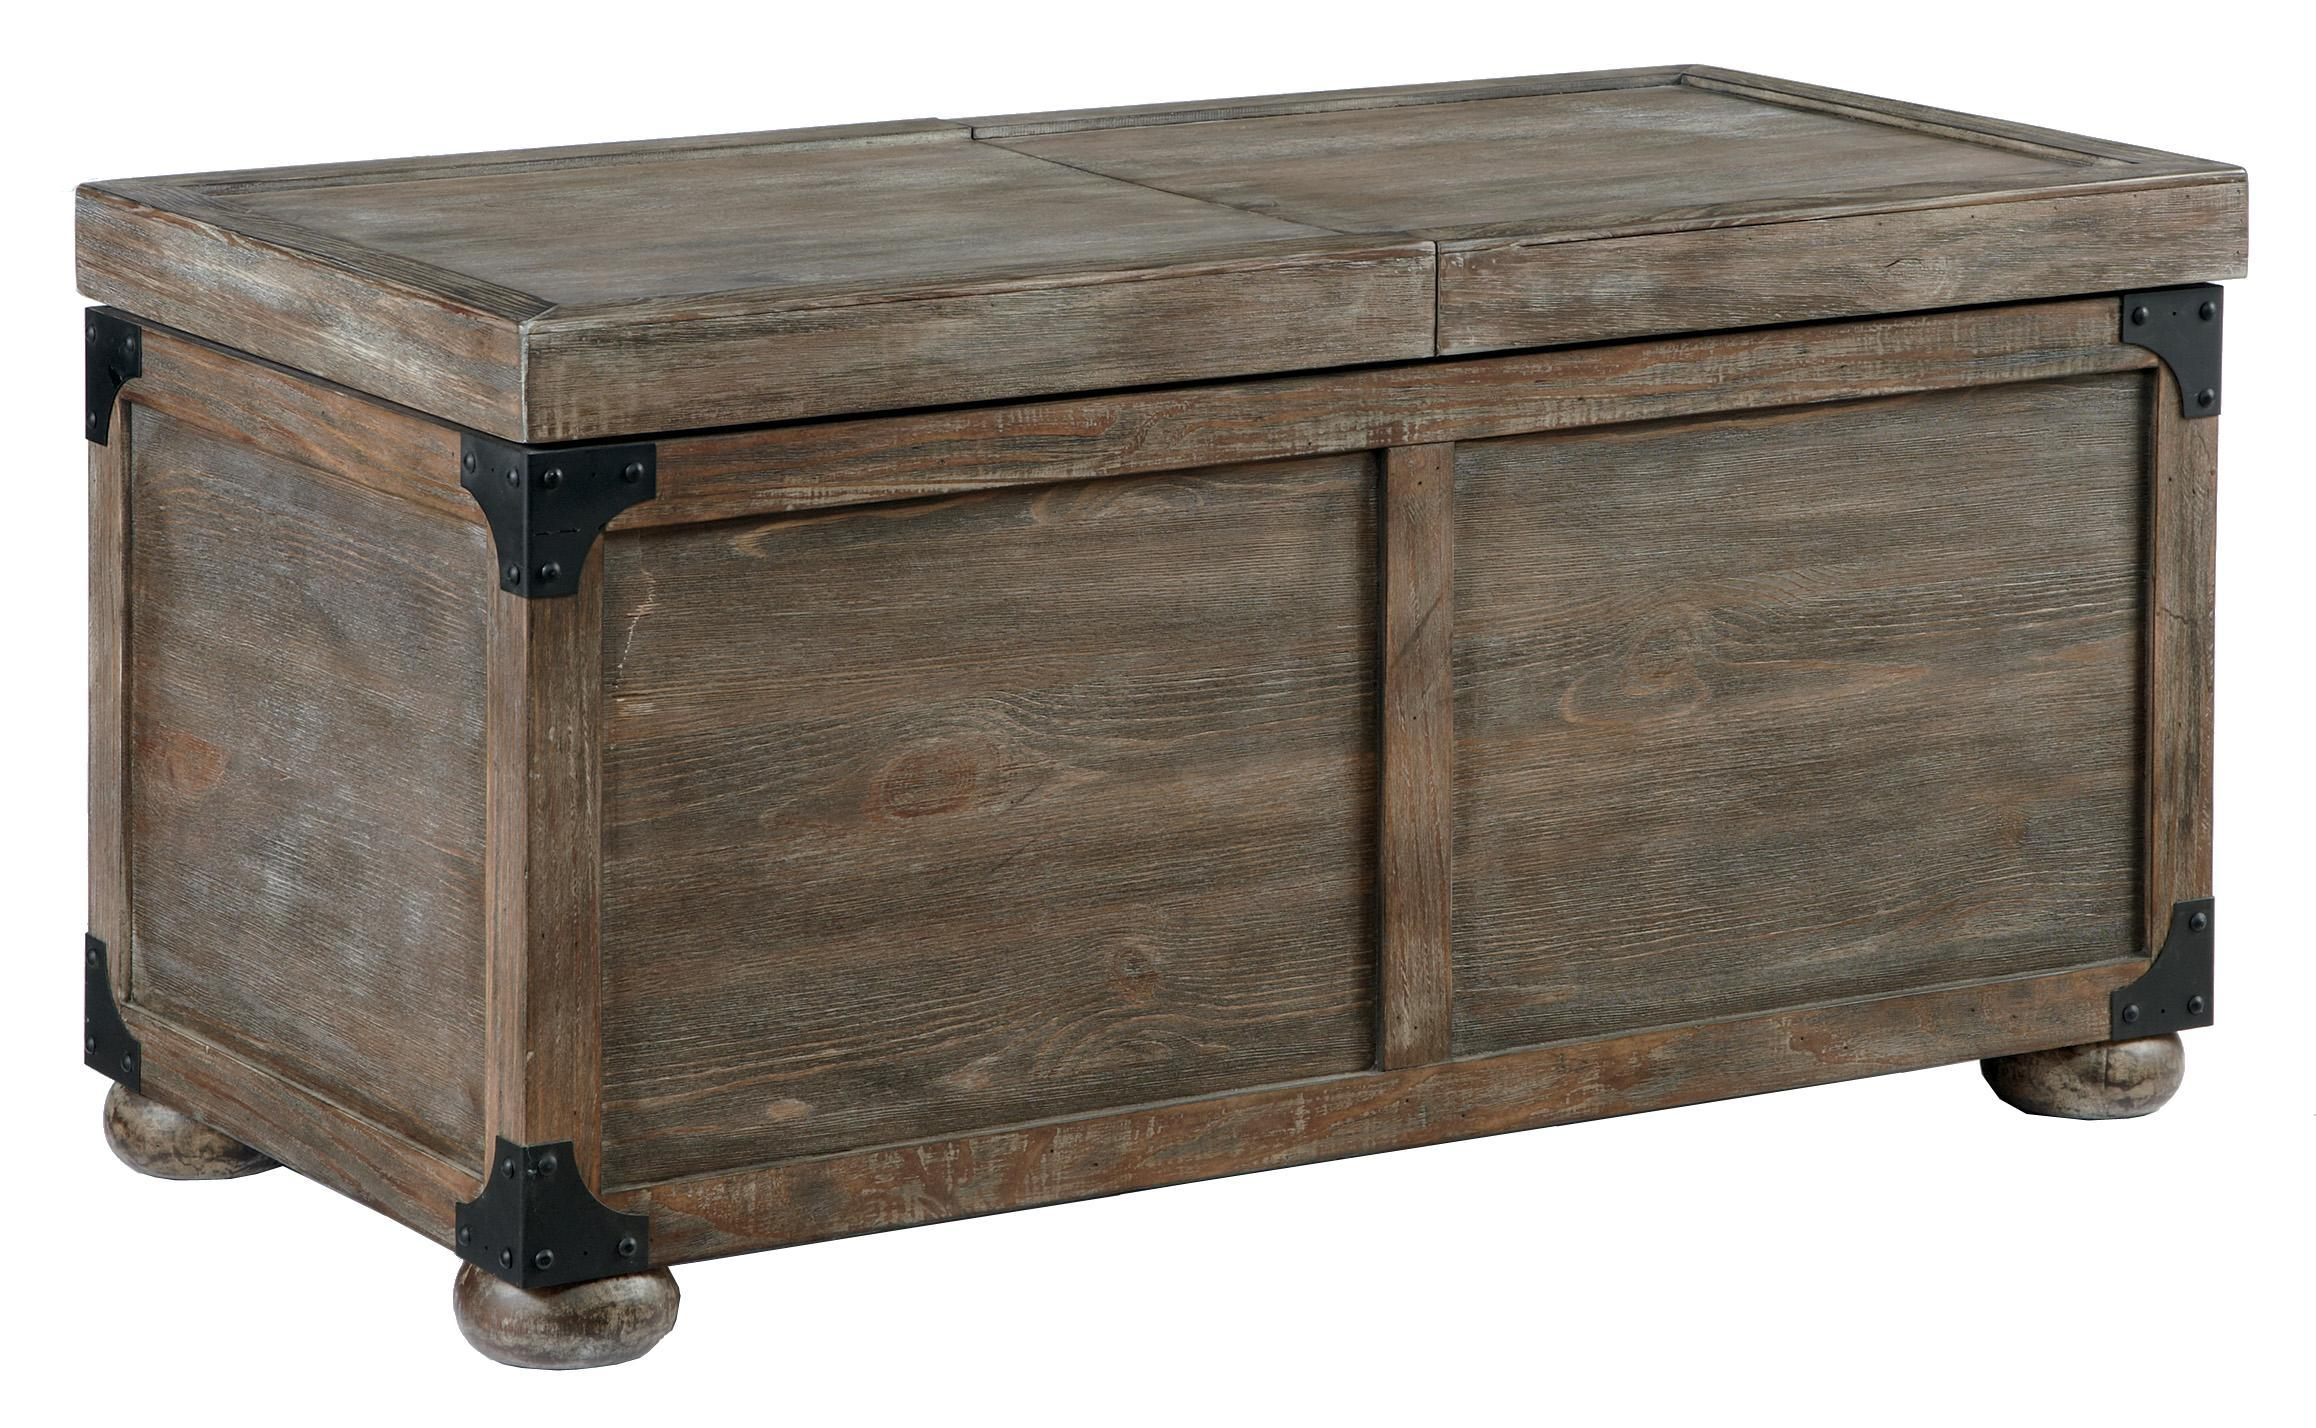 Rustic Accents Trunk Style Rustic Storage Cocktail Table From Signature Design By Ashley